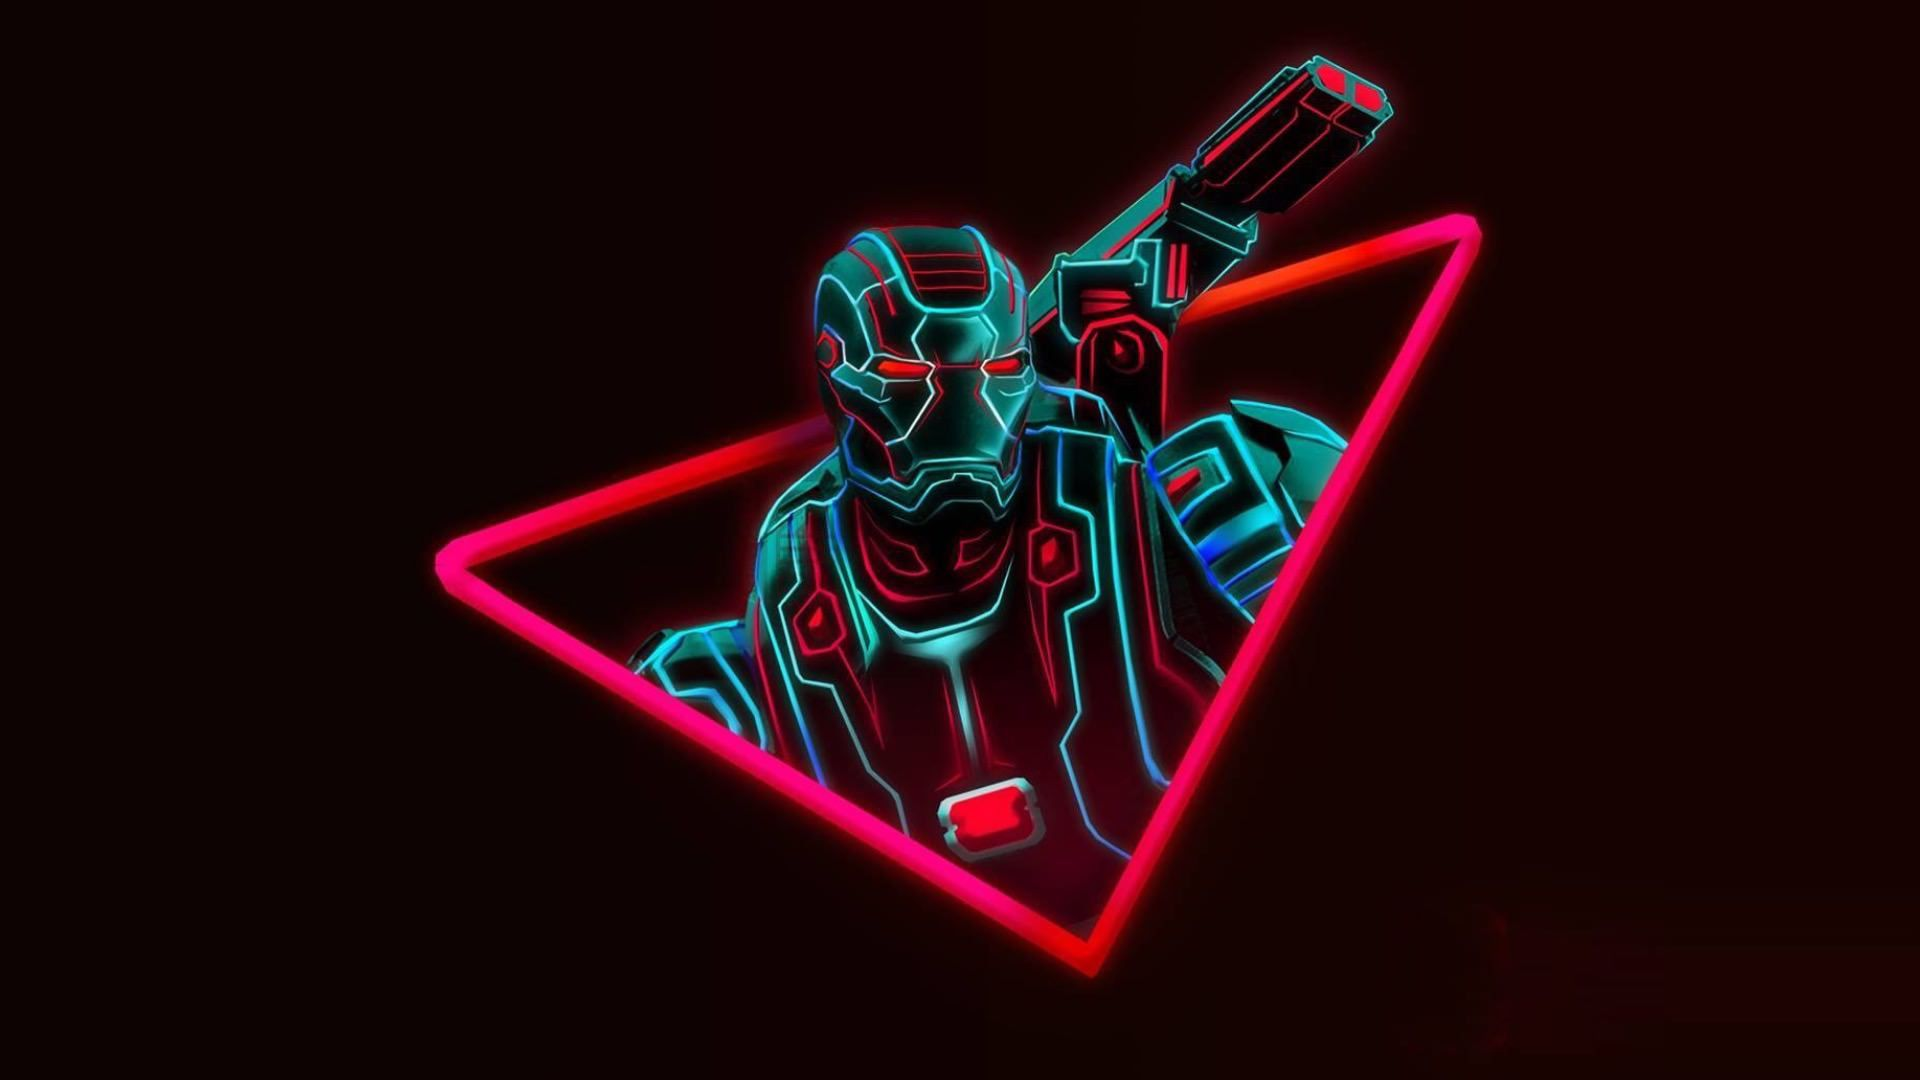 Neon Avengers 1920x1080 Desktop Wallpapers Based On Artwork By Aniketjatav Instagram